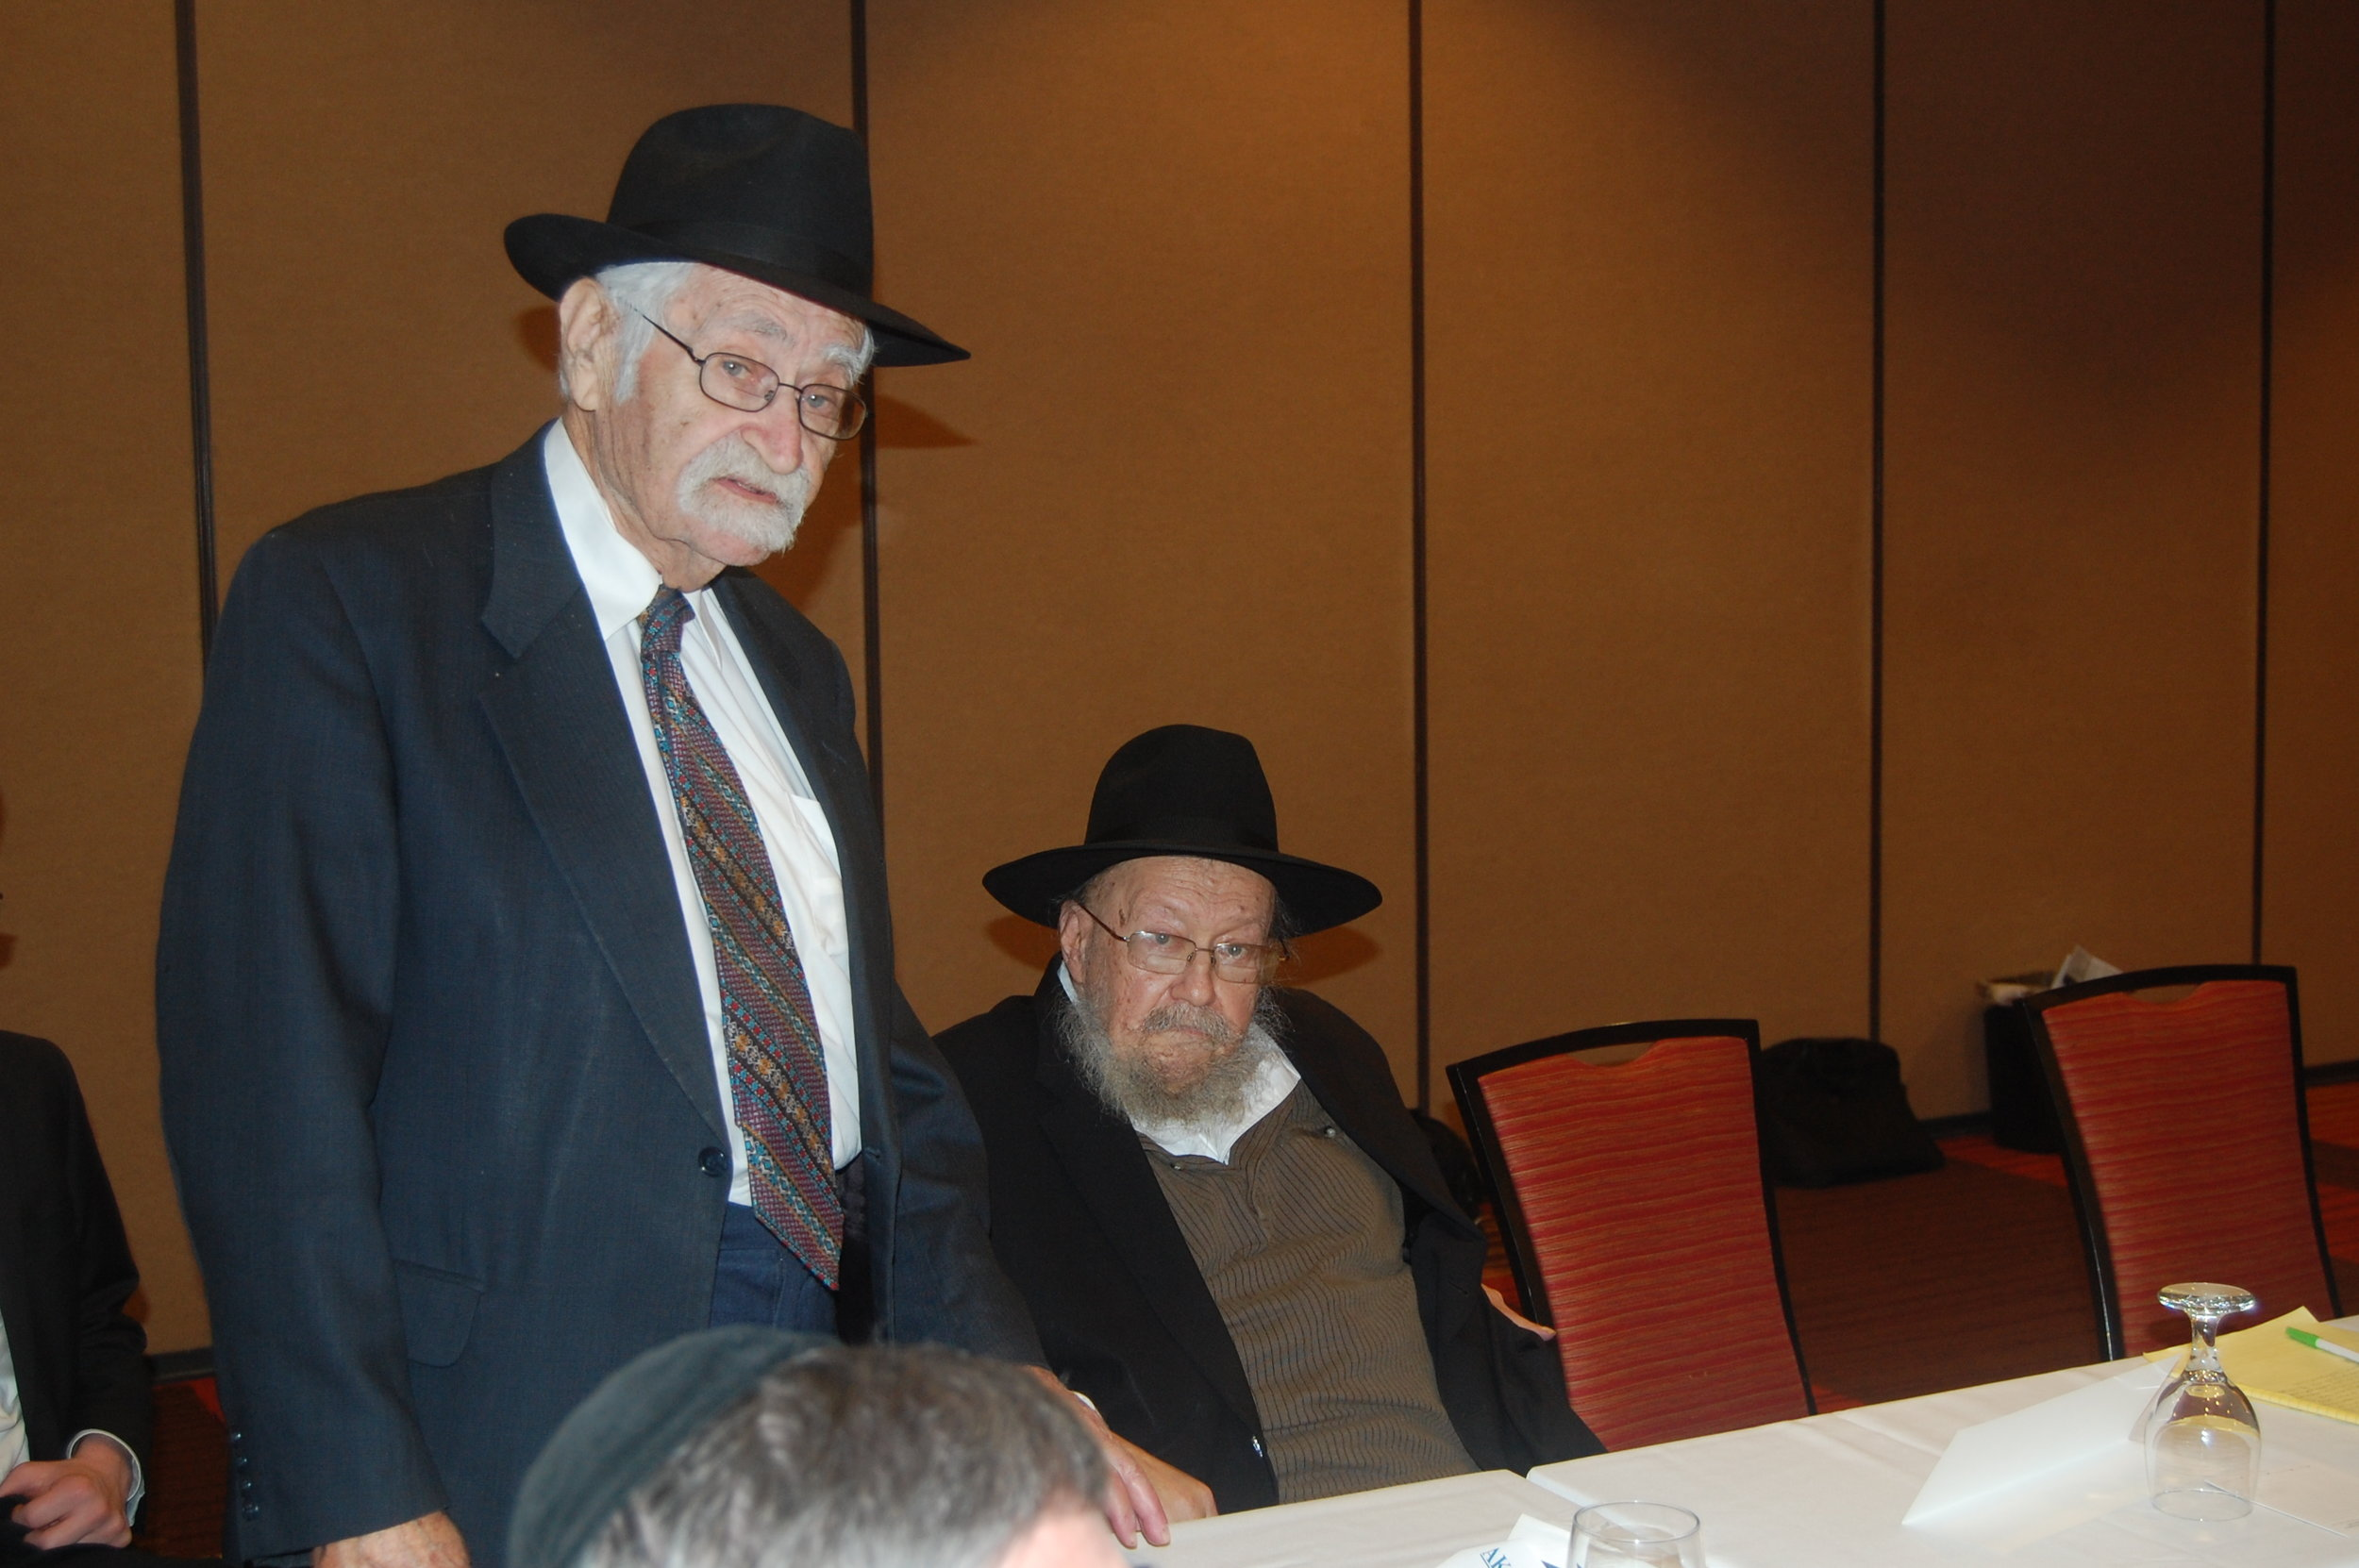 Reb Chaim Goldzweig and Rabbi Nota Greenblatt  at the AKO Convention Oxnard CA February 2017.JPG